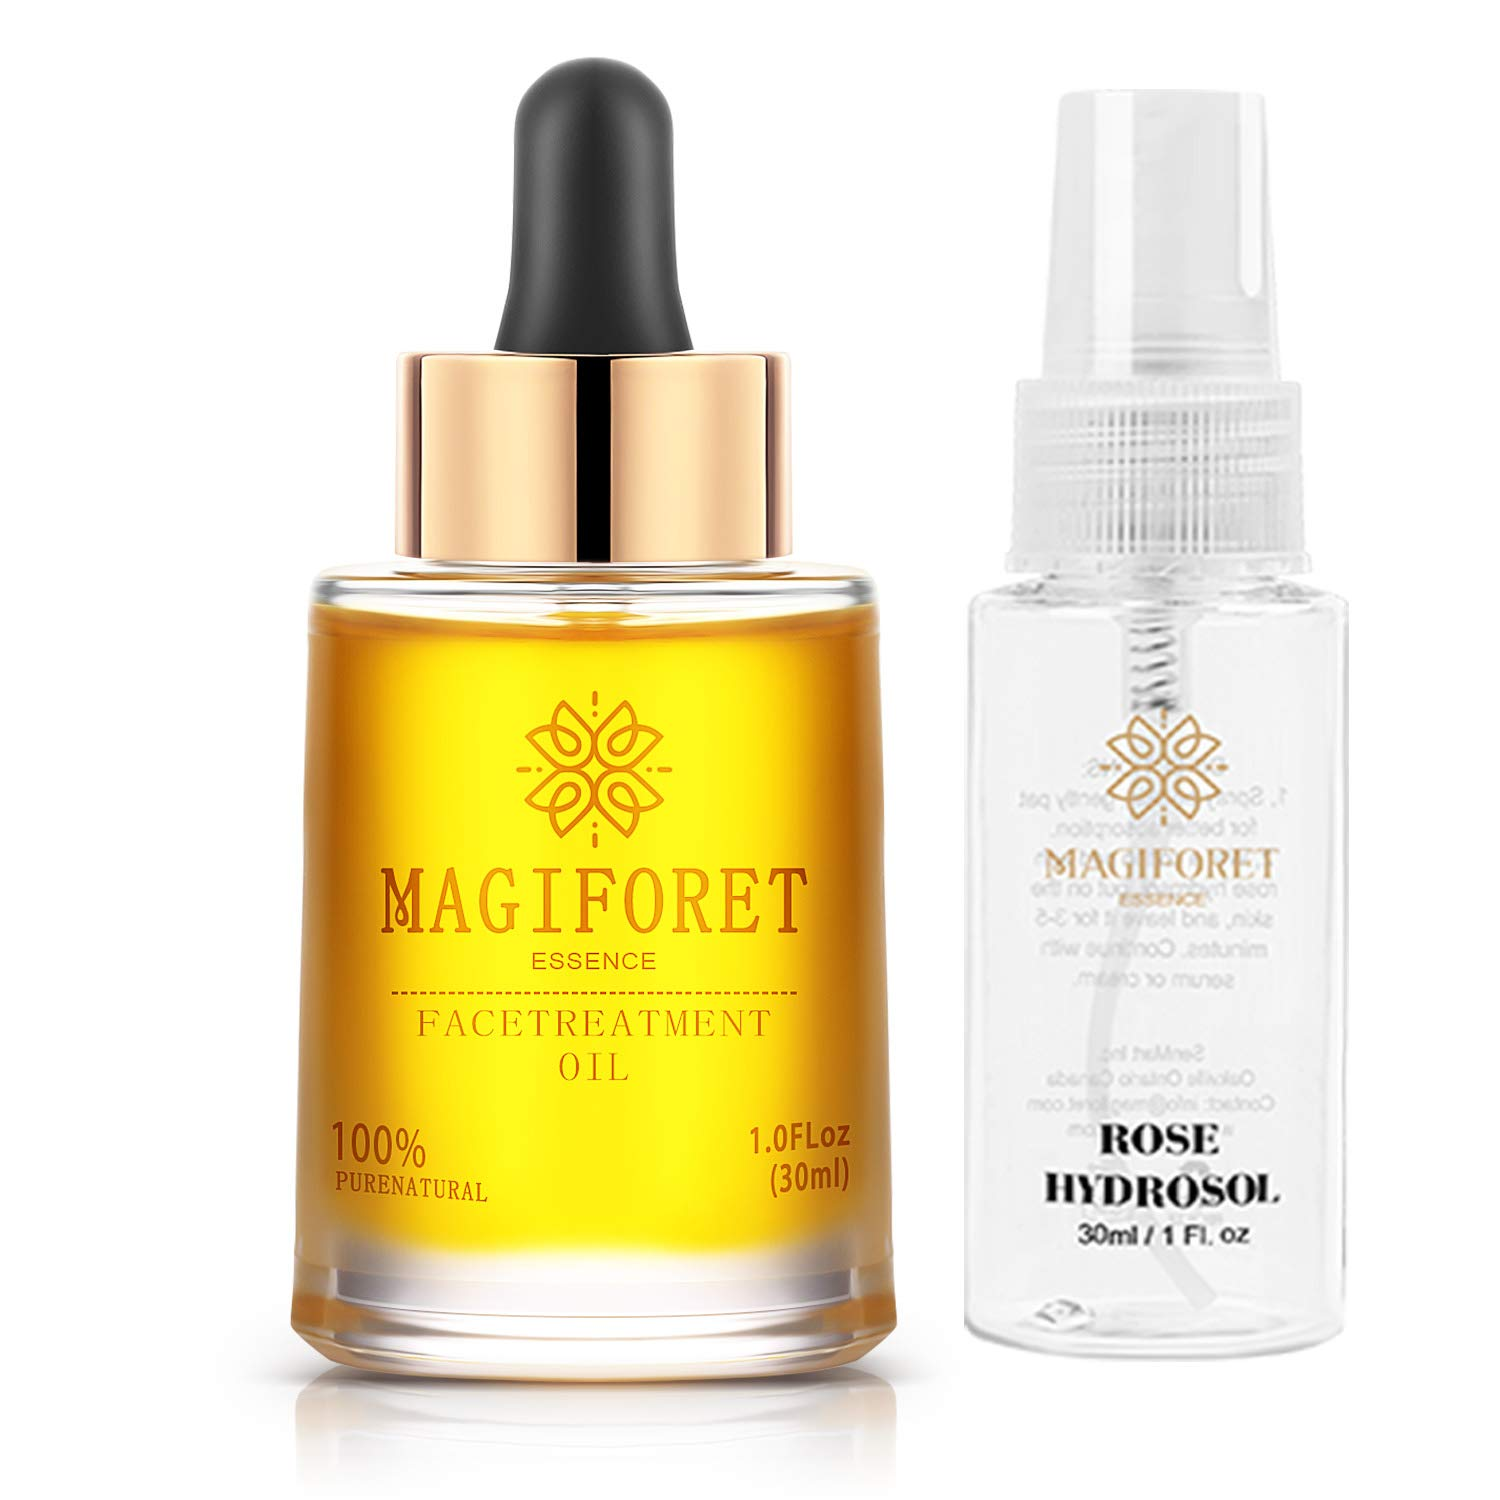 Amazon.com: Face Oil, MagiForet Natural Facial Oil osmanthus 1.0 oz, Organic  face serum, Vegan Anti Aging Moisturizer for unisex, safe for pregnant and  breast feeding women, with Jojoba Oil Argan Oil Rosehip